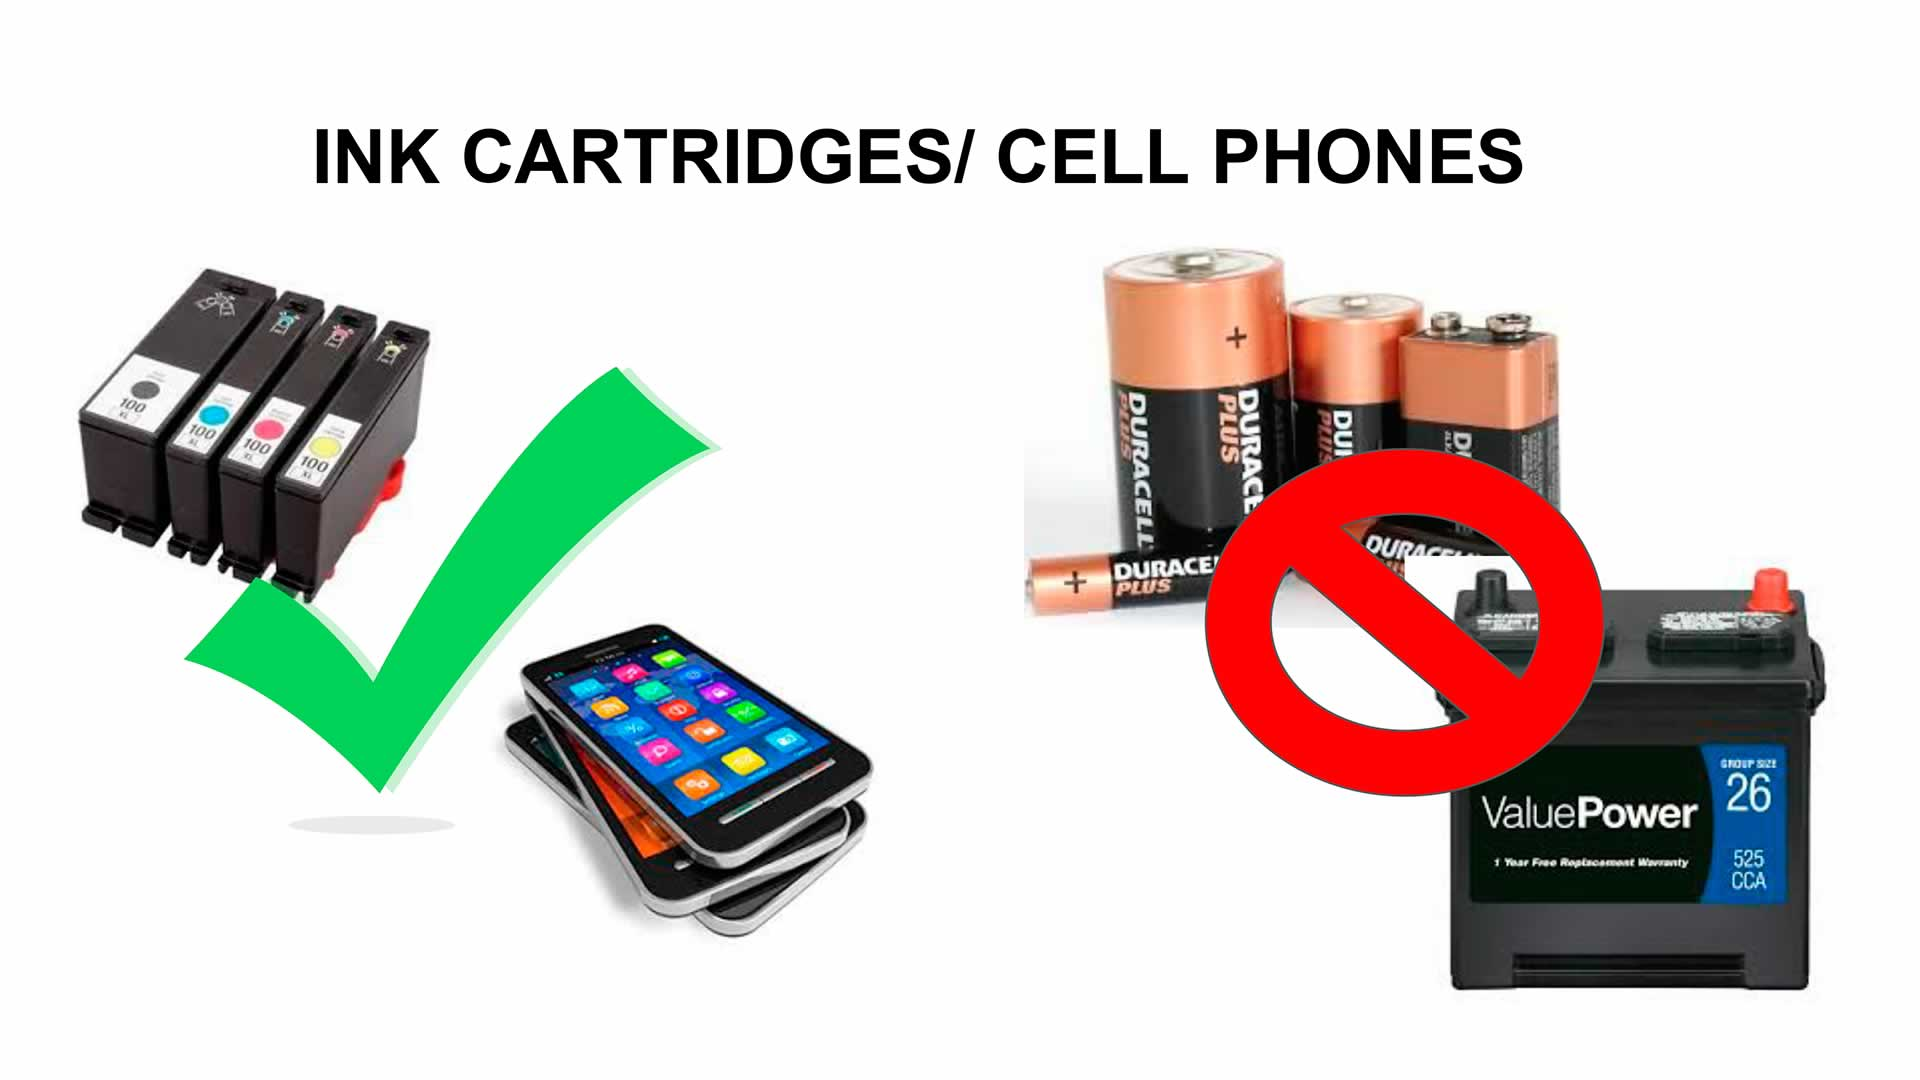 Ink Cartridges and Cell Phones